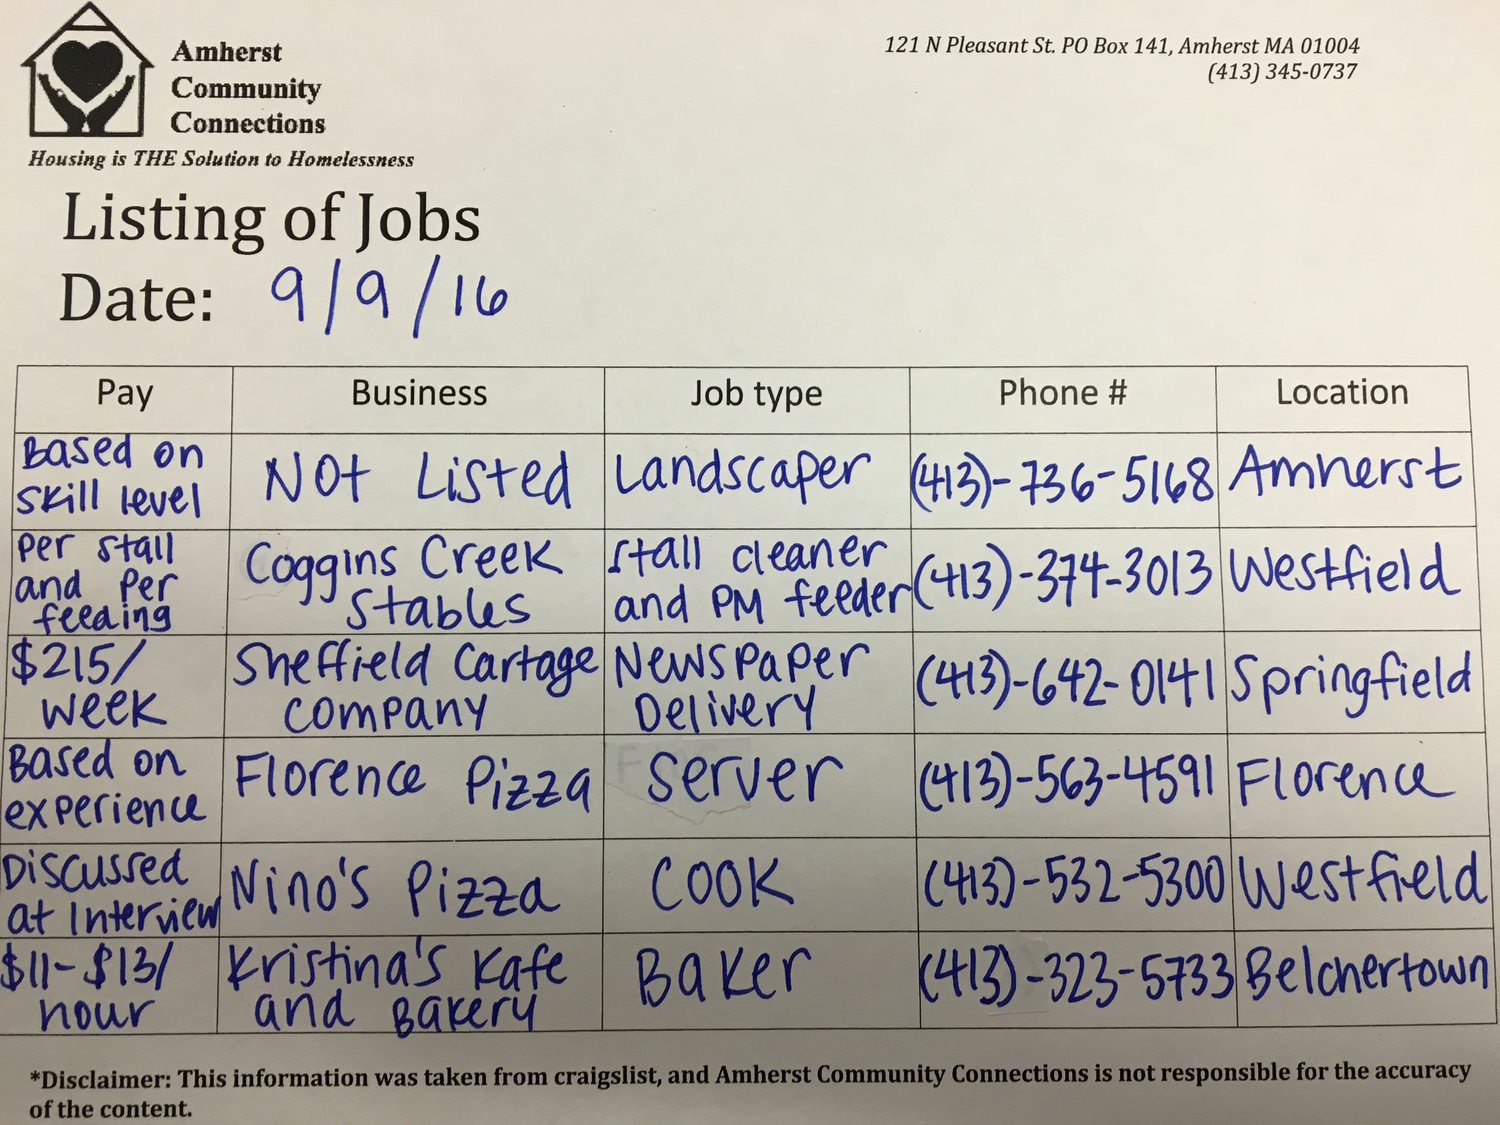 Job Listings Friday, 9/9/201 — Amherst Community Connections